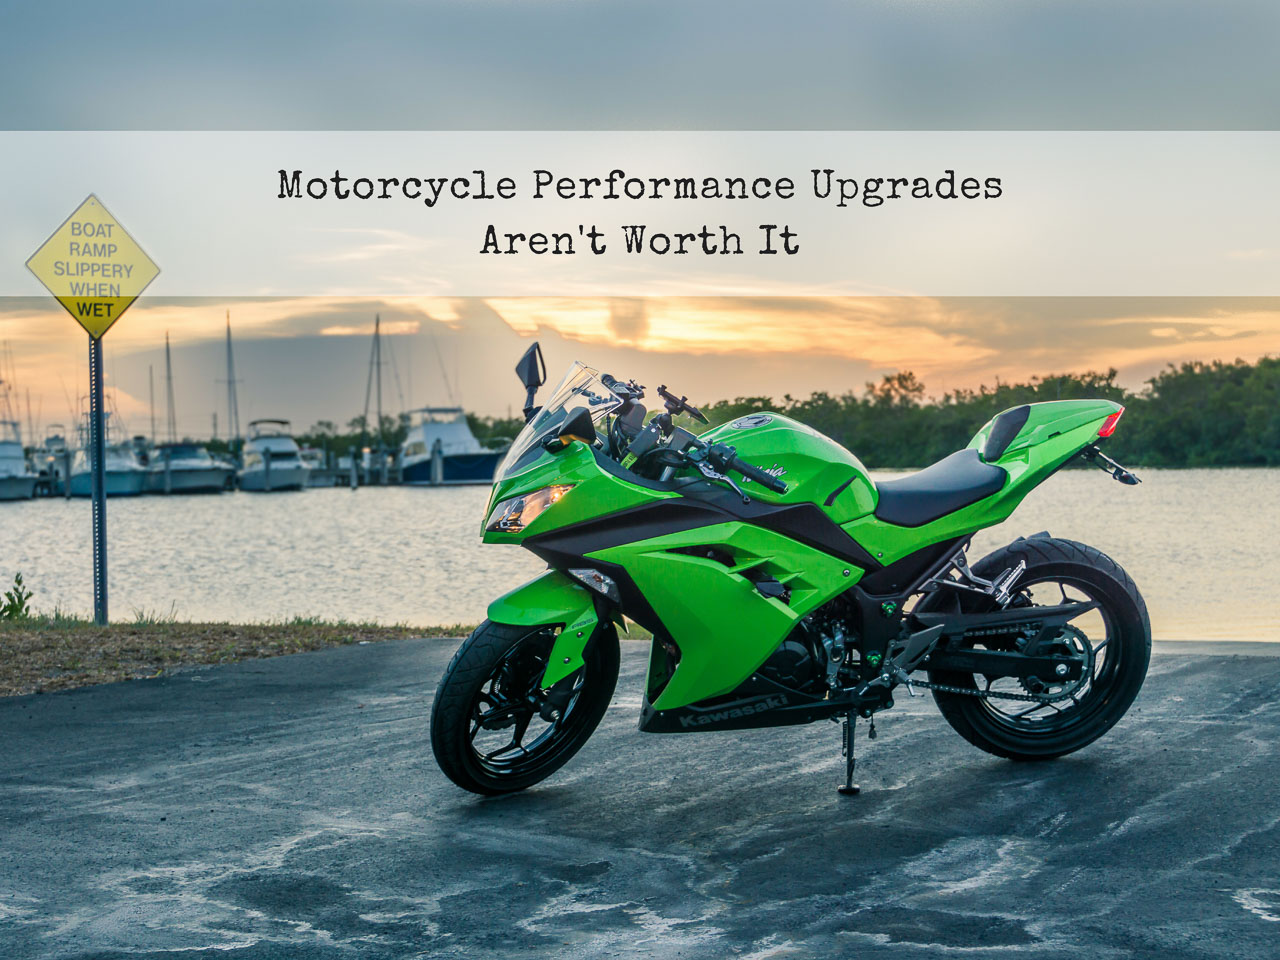 Why Motorcycle Performance Upgrades Aren't Worth it - Title Thumbnail